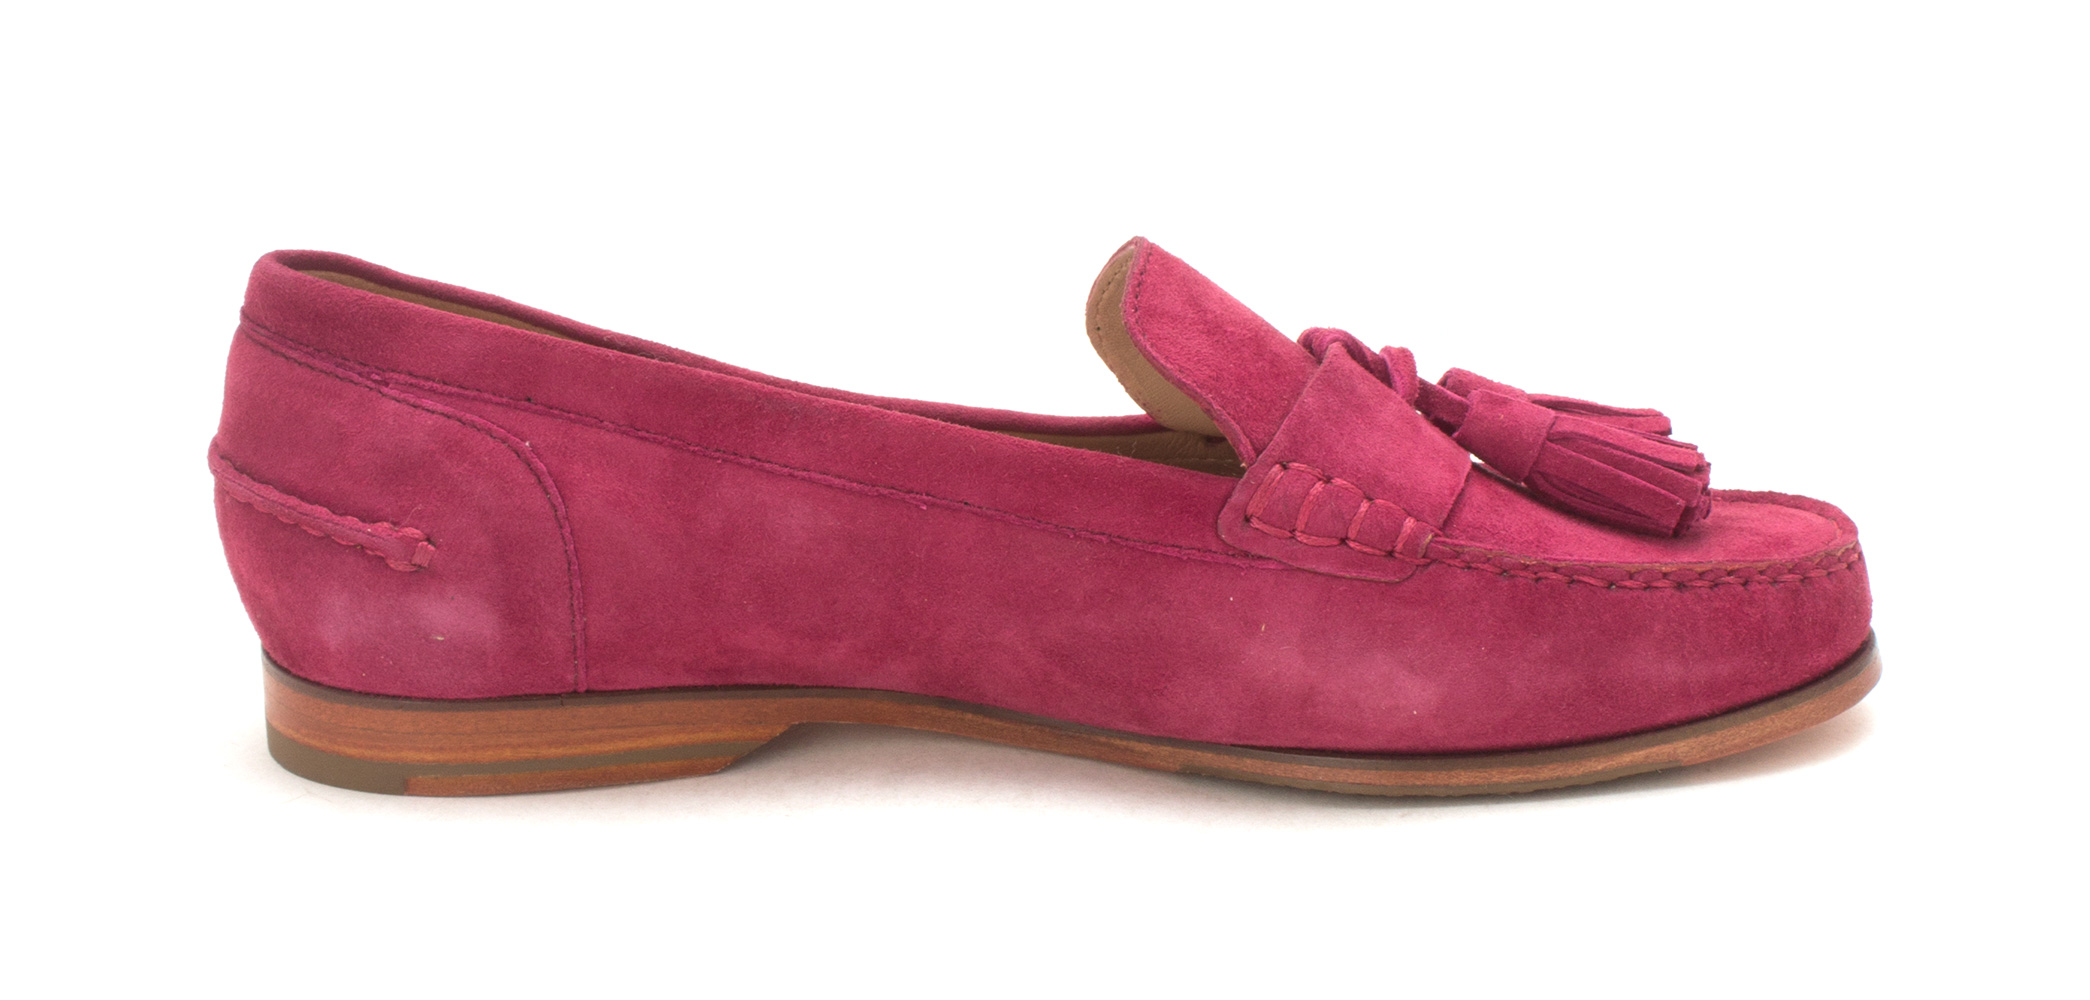 e59c819c743 Cole Haan Womens Pinch Grand Tassel Closed Toe Loafers